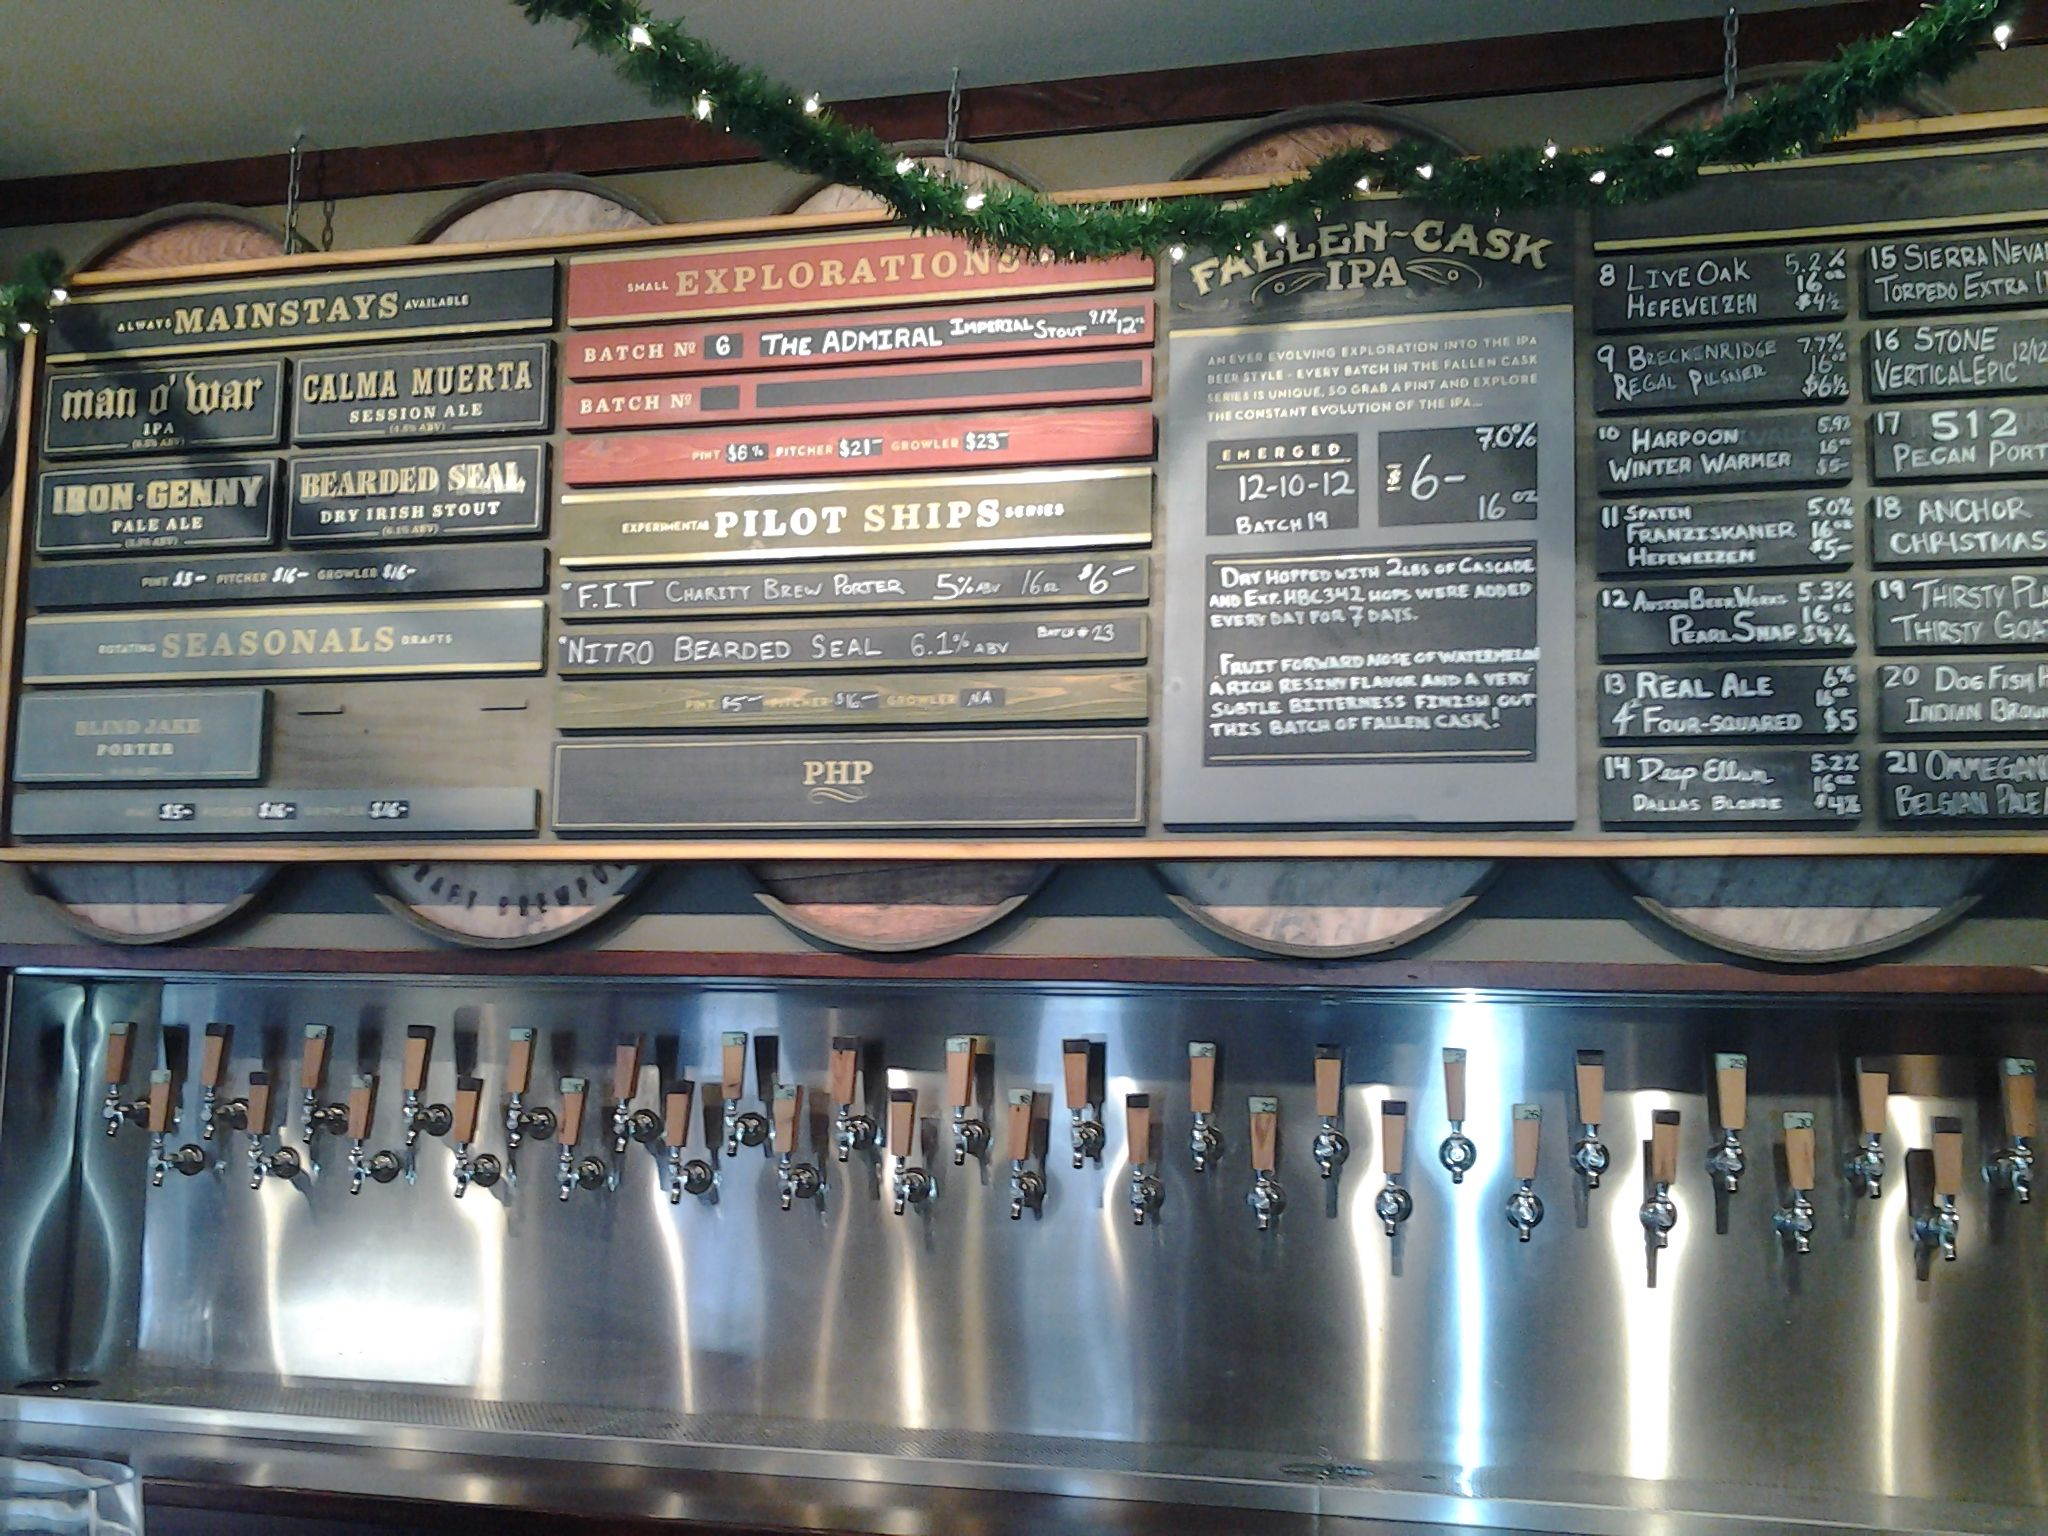 Moderne Gastronomie Sch Rzen Led Tail Light Wiring Diagram Beer Menu Board Old School Signage Design Interiors And